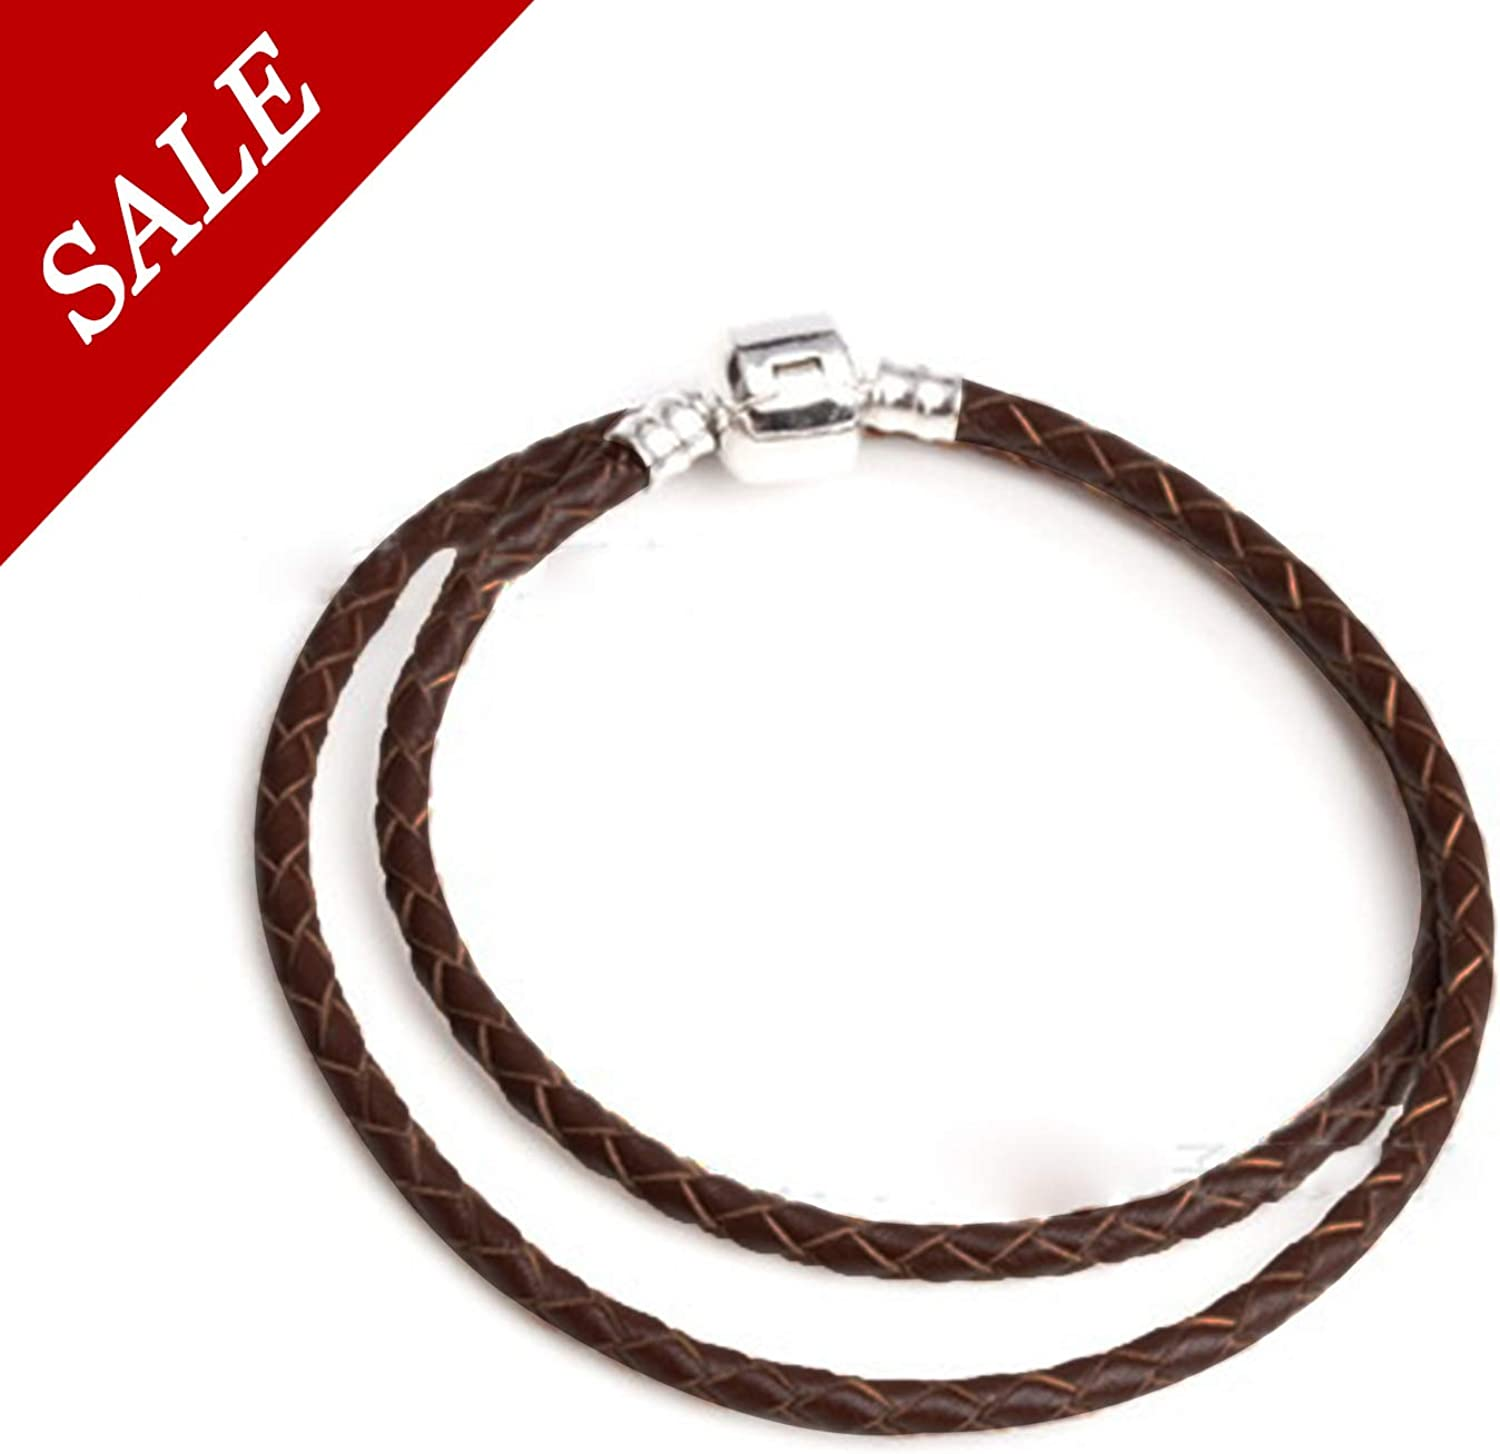 HK Tec Leather Braided Cord...